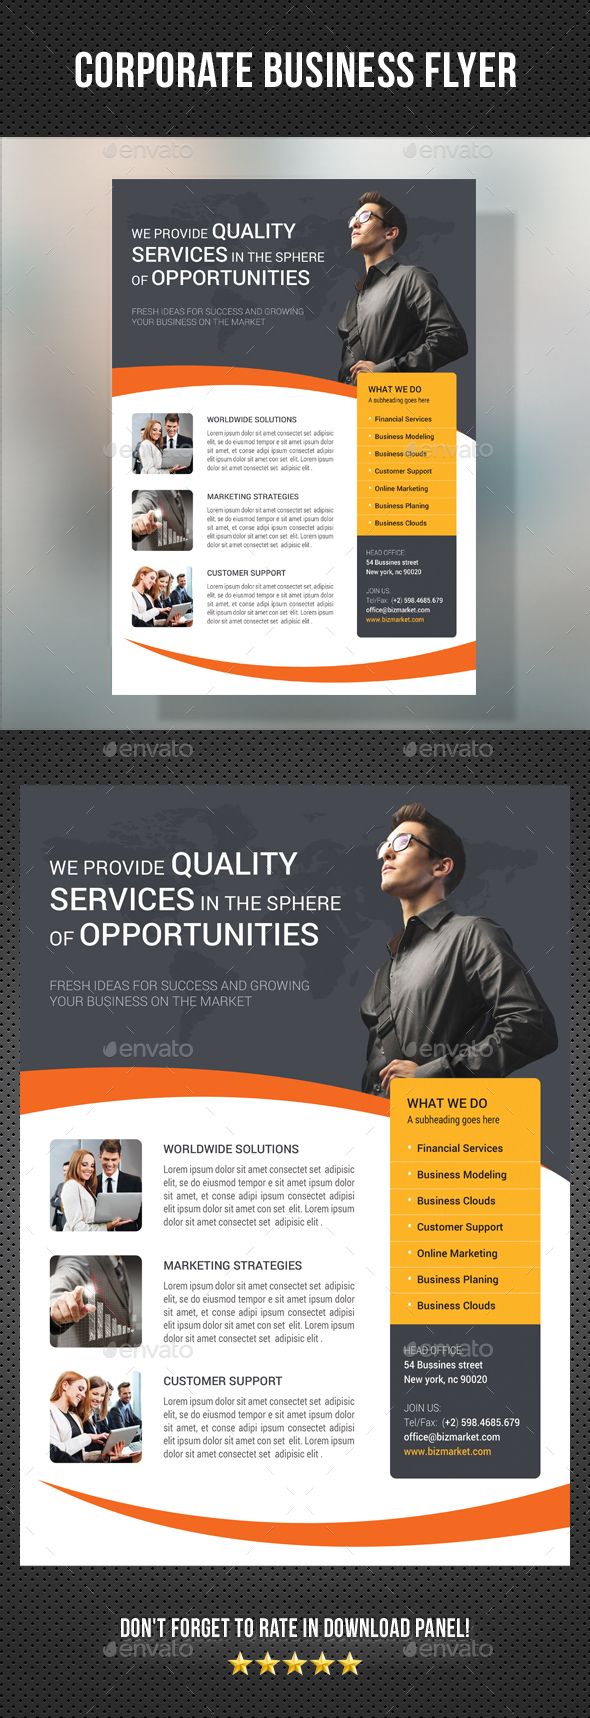 Corporate Business Flyer 19 - Corporate Flyers